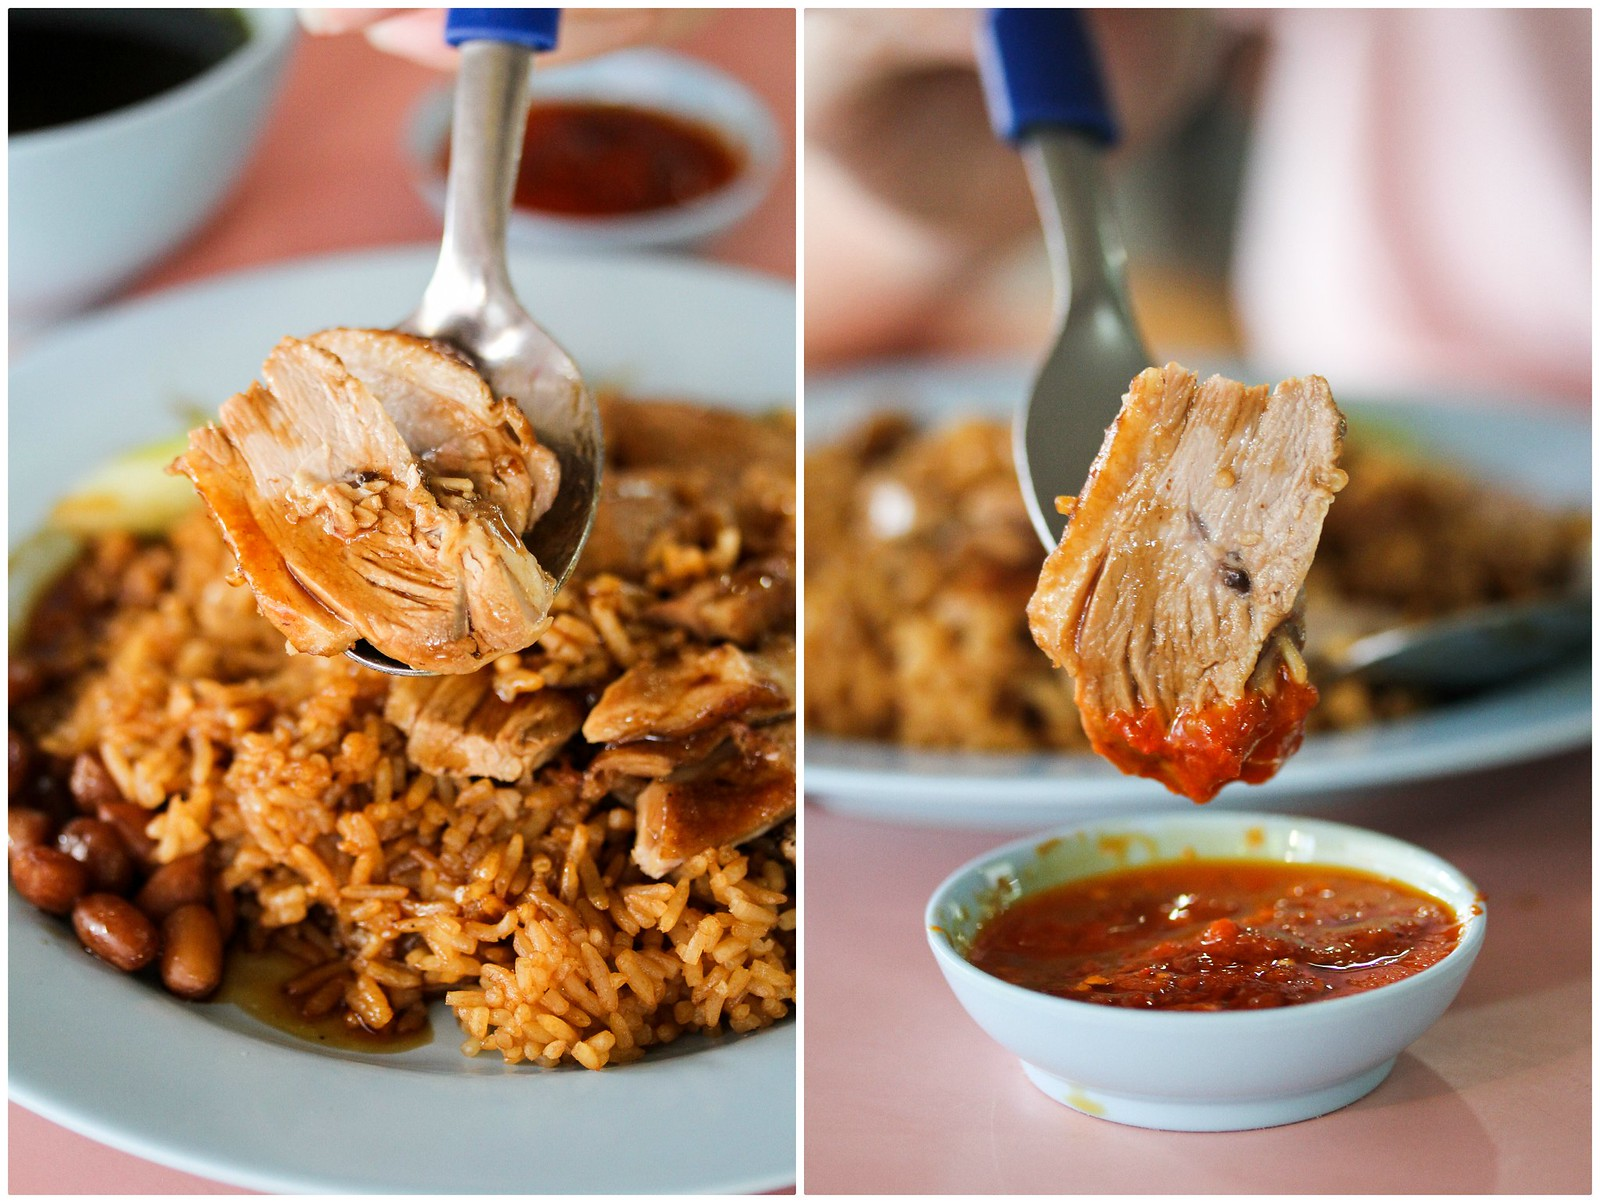 Ban Chuan Braised Duck Rice collage 1